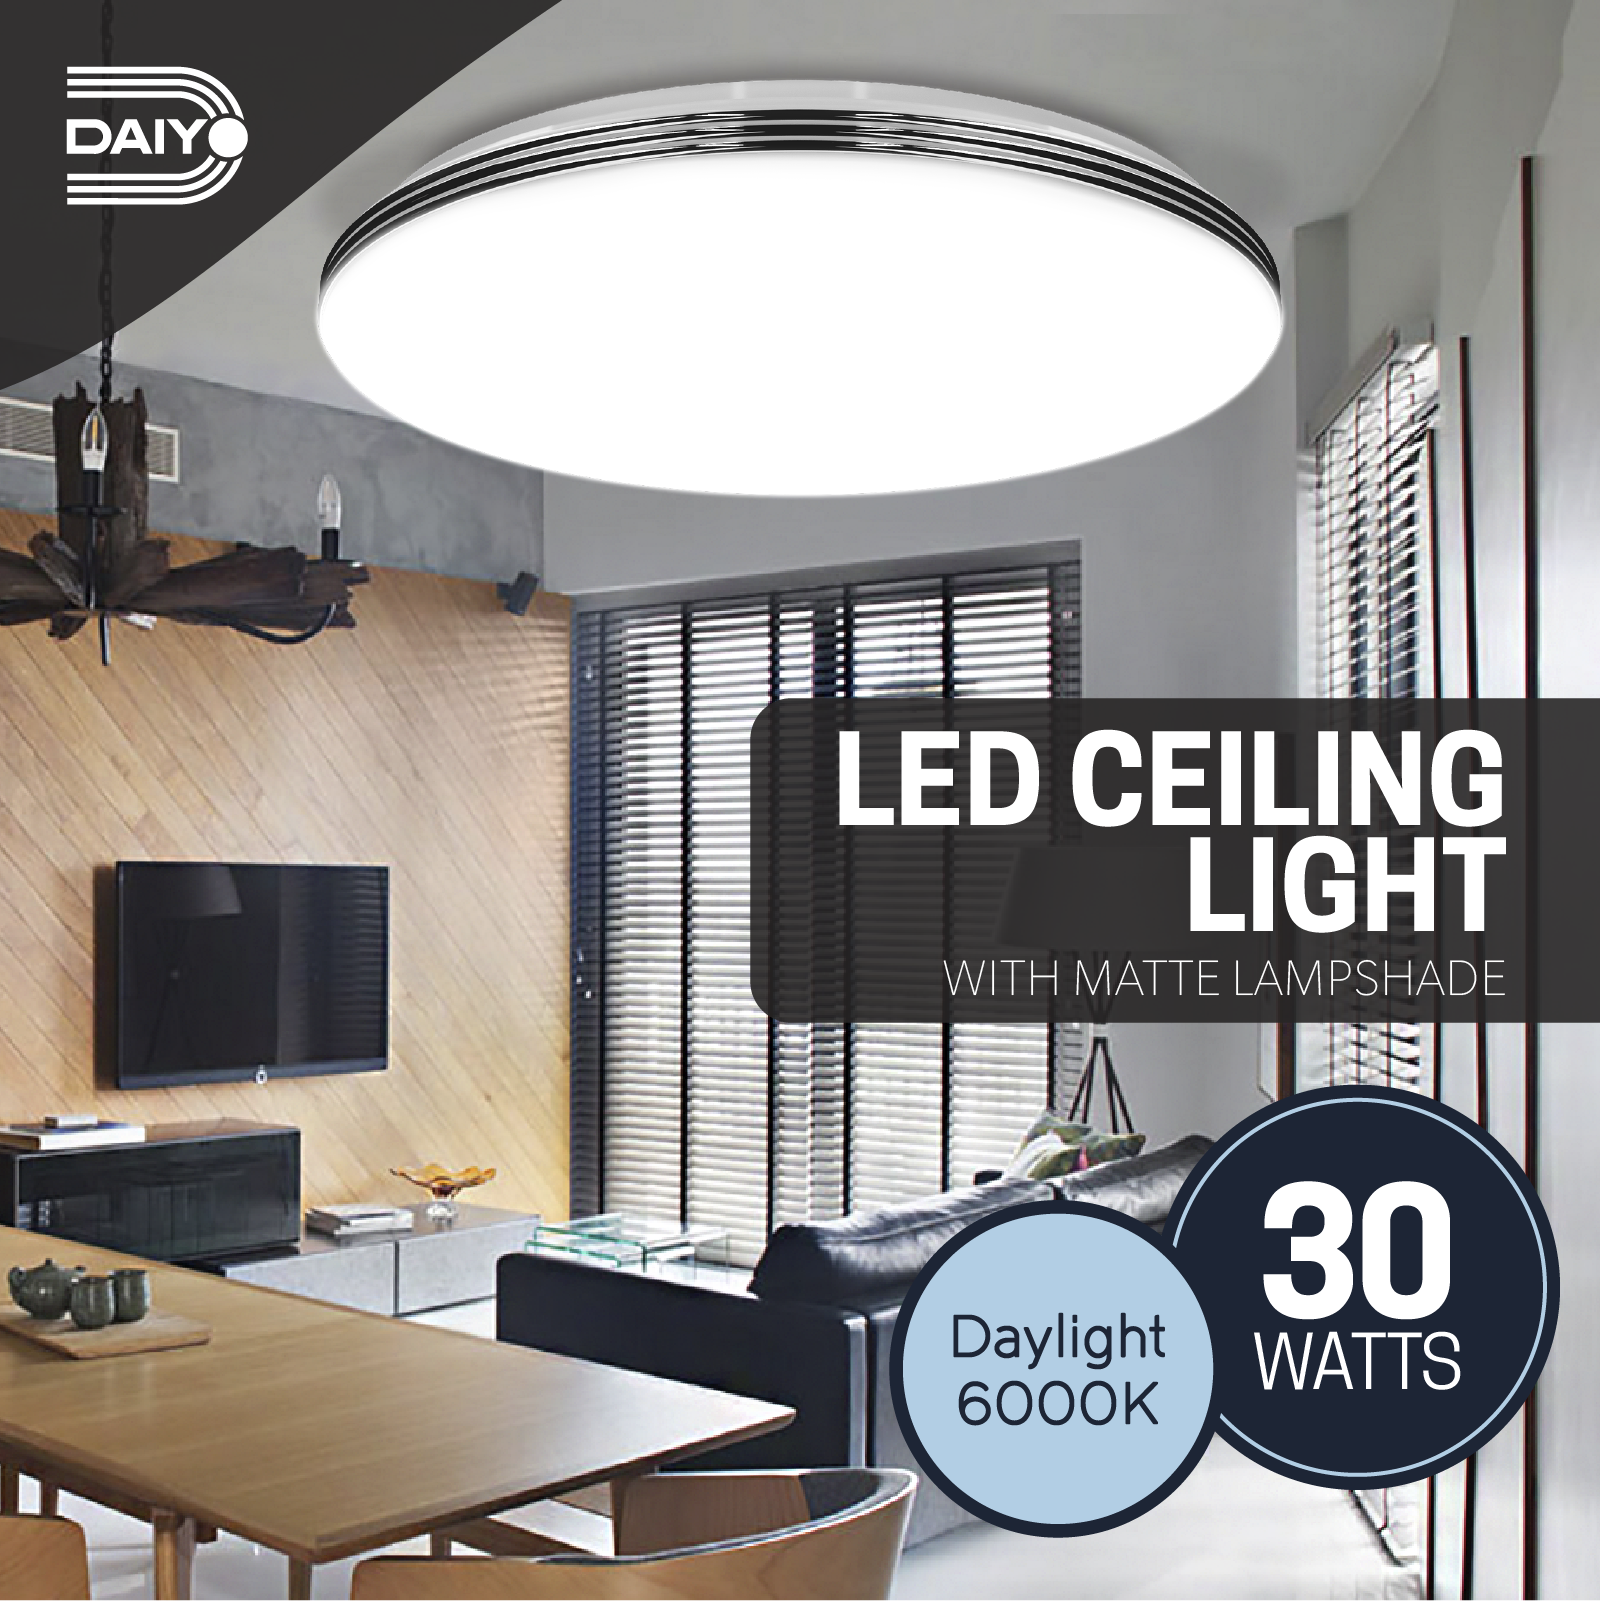 Daiyo LED Ceiling Light LCL162 DL